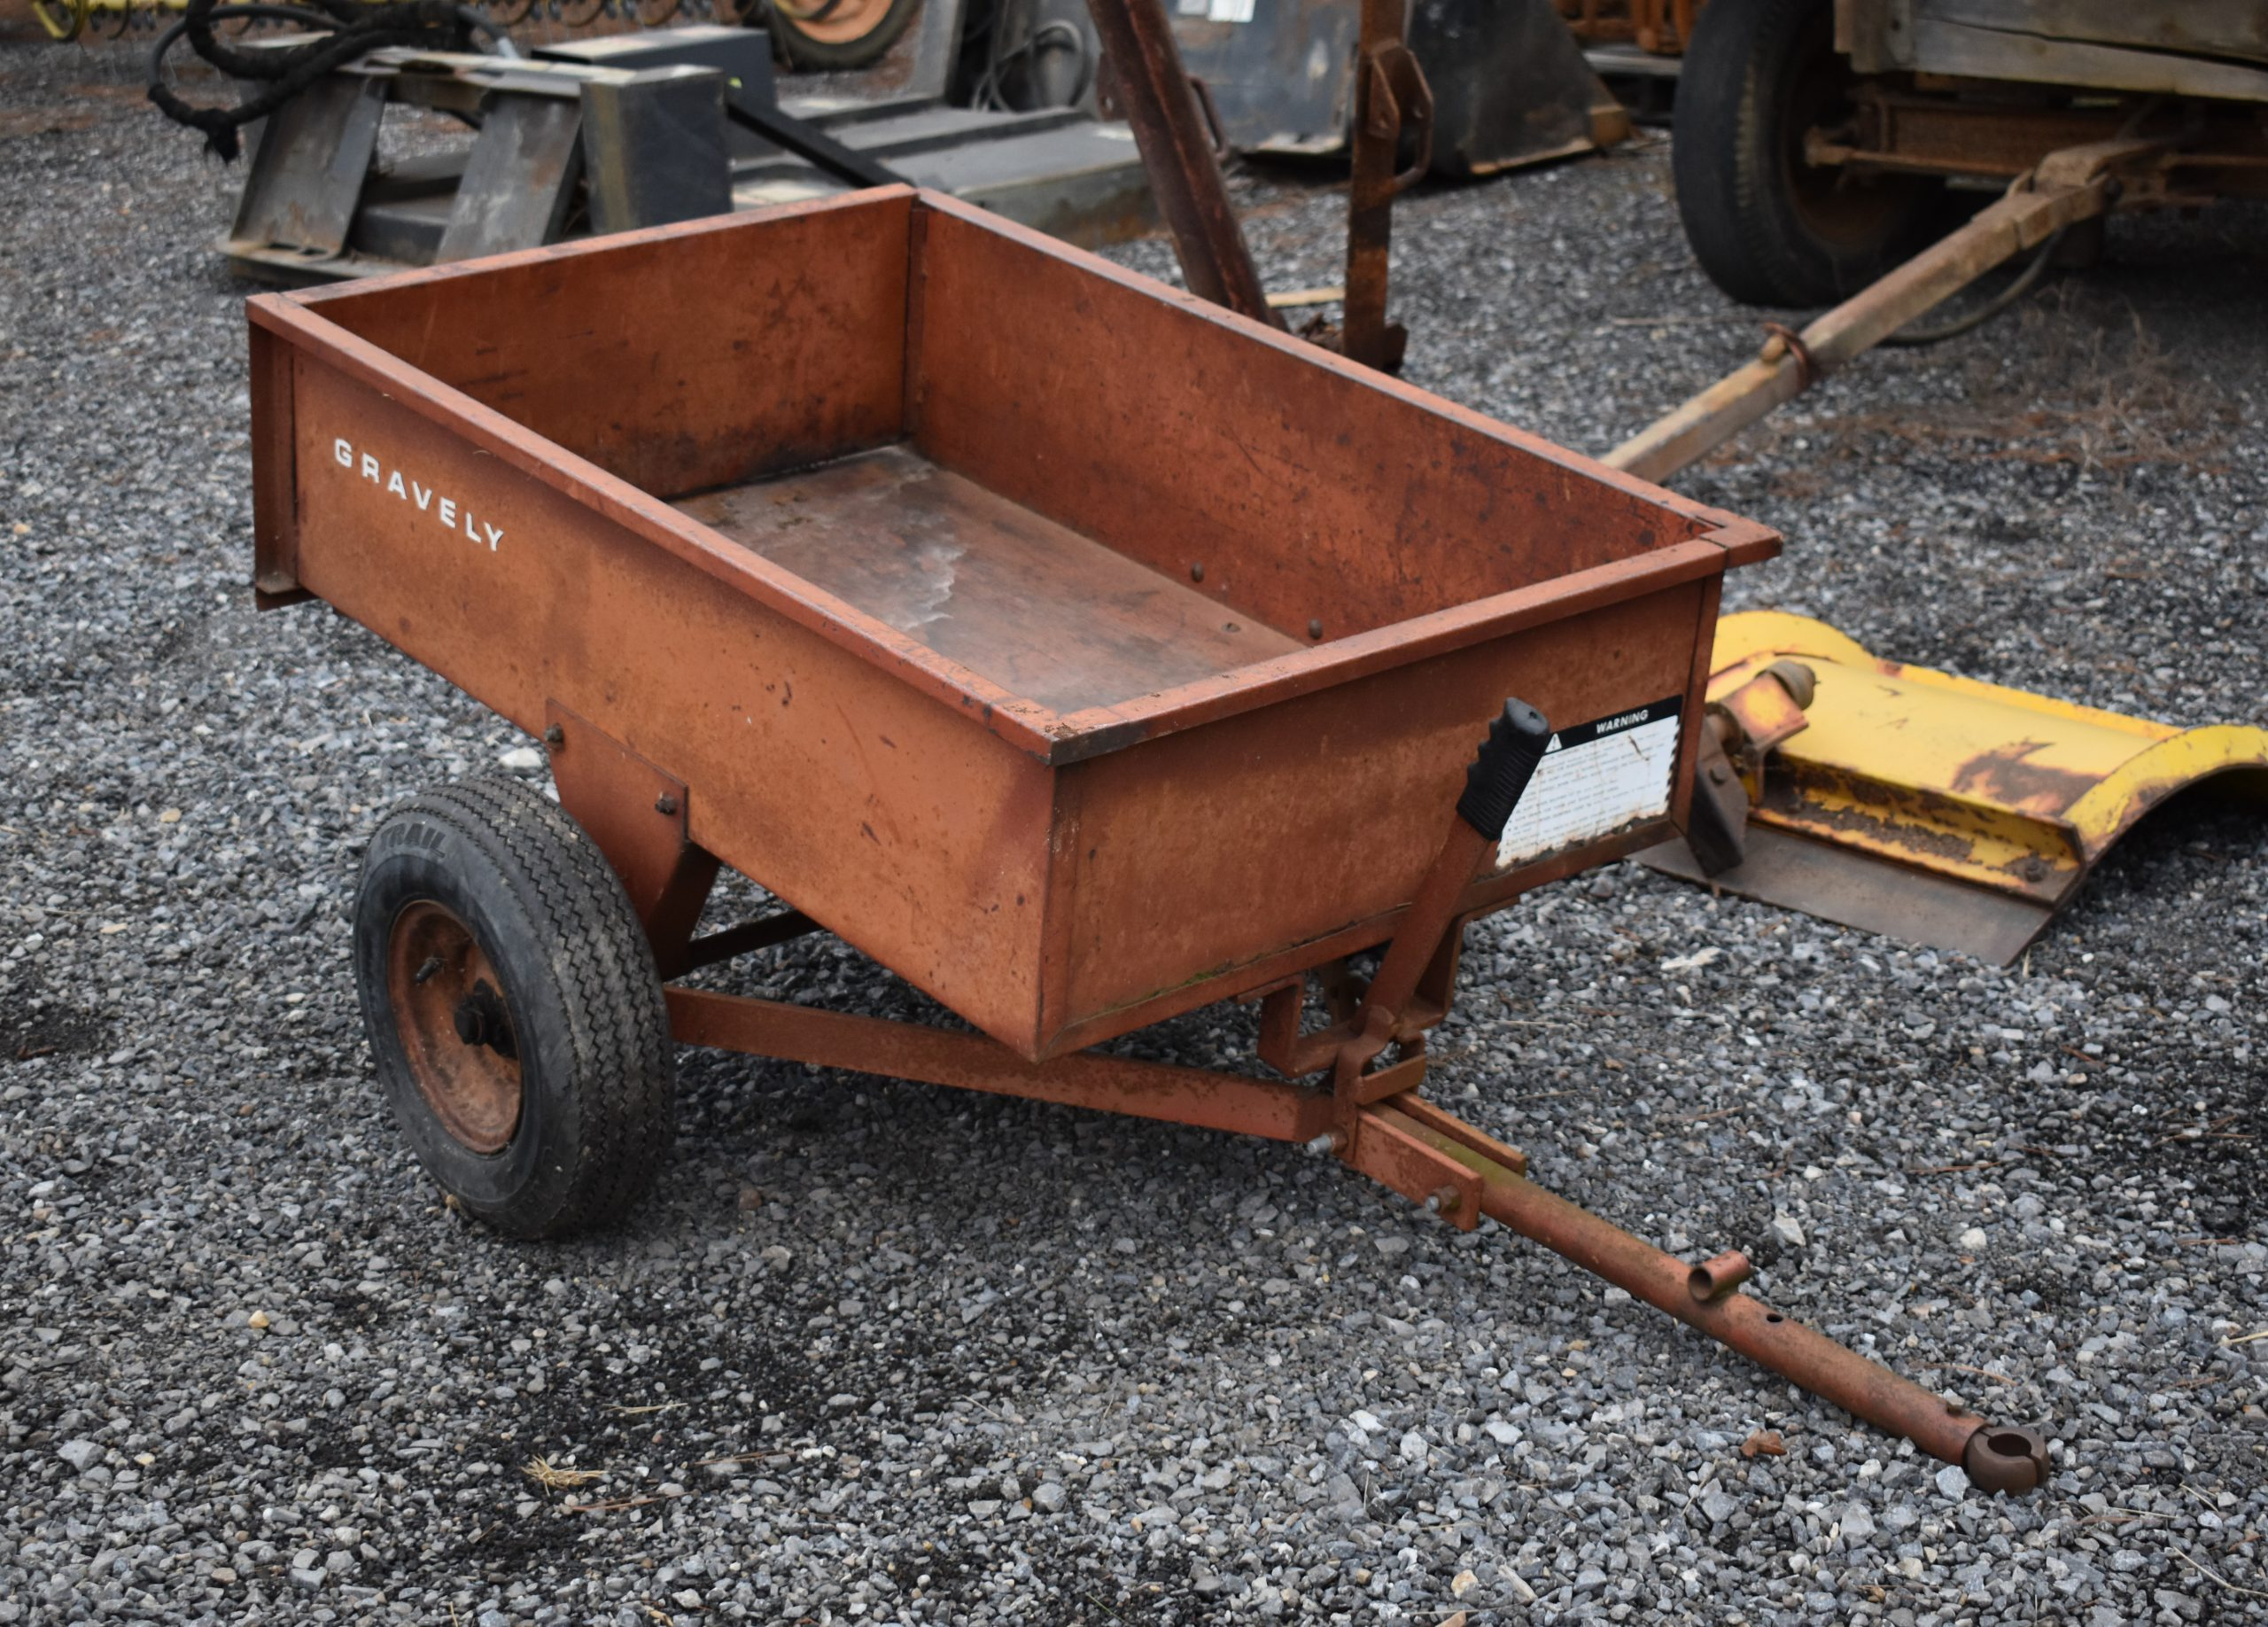 Gravely Cart Image